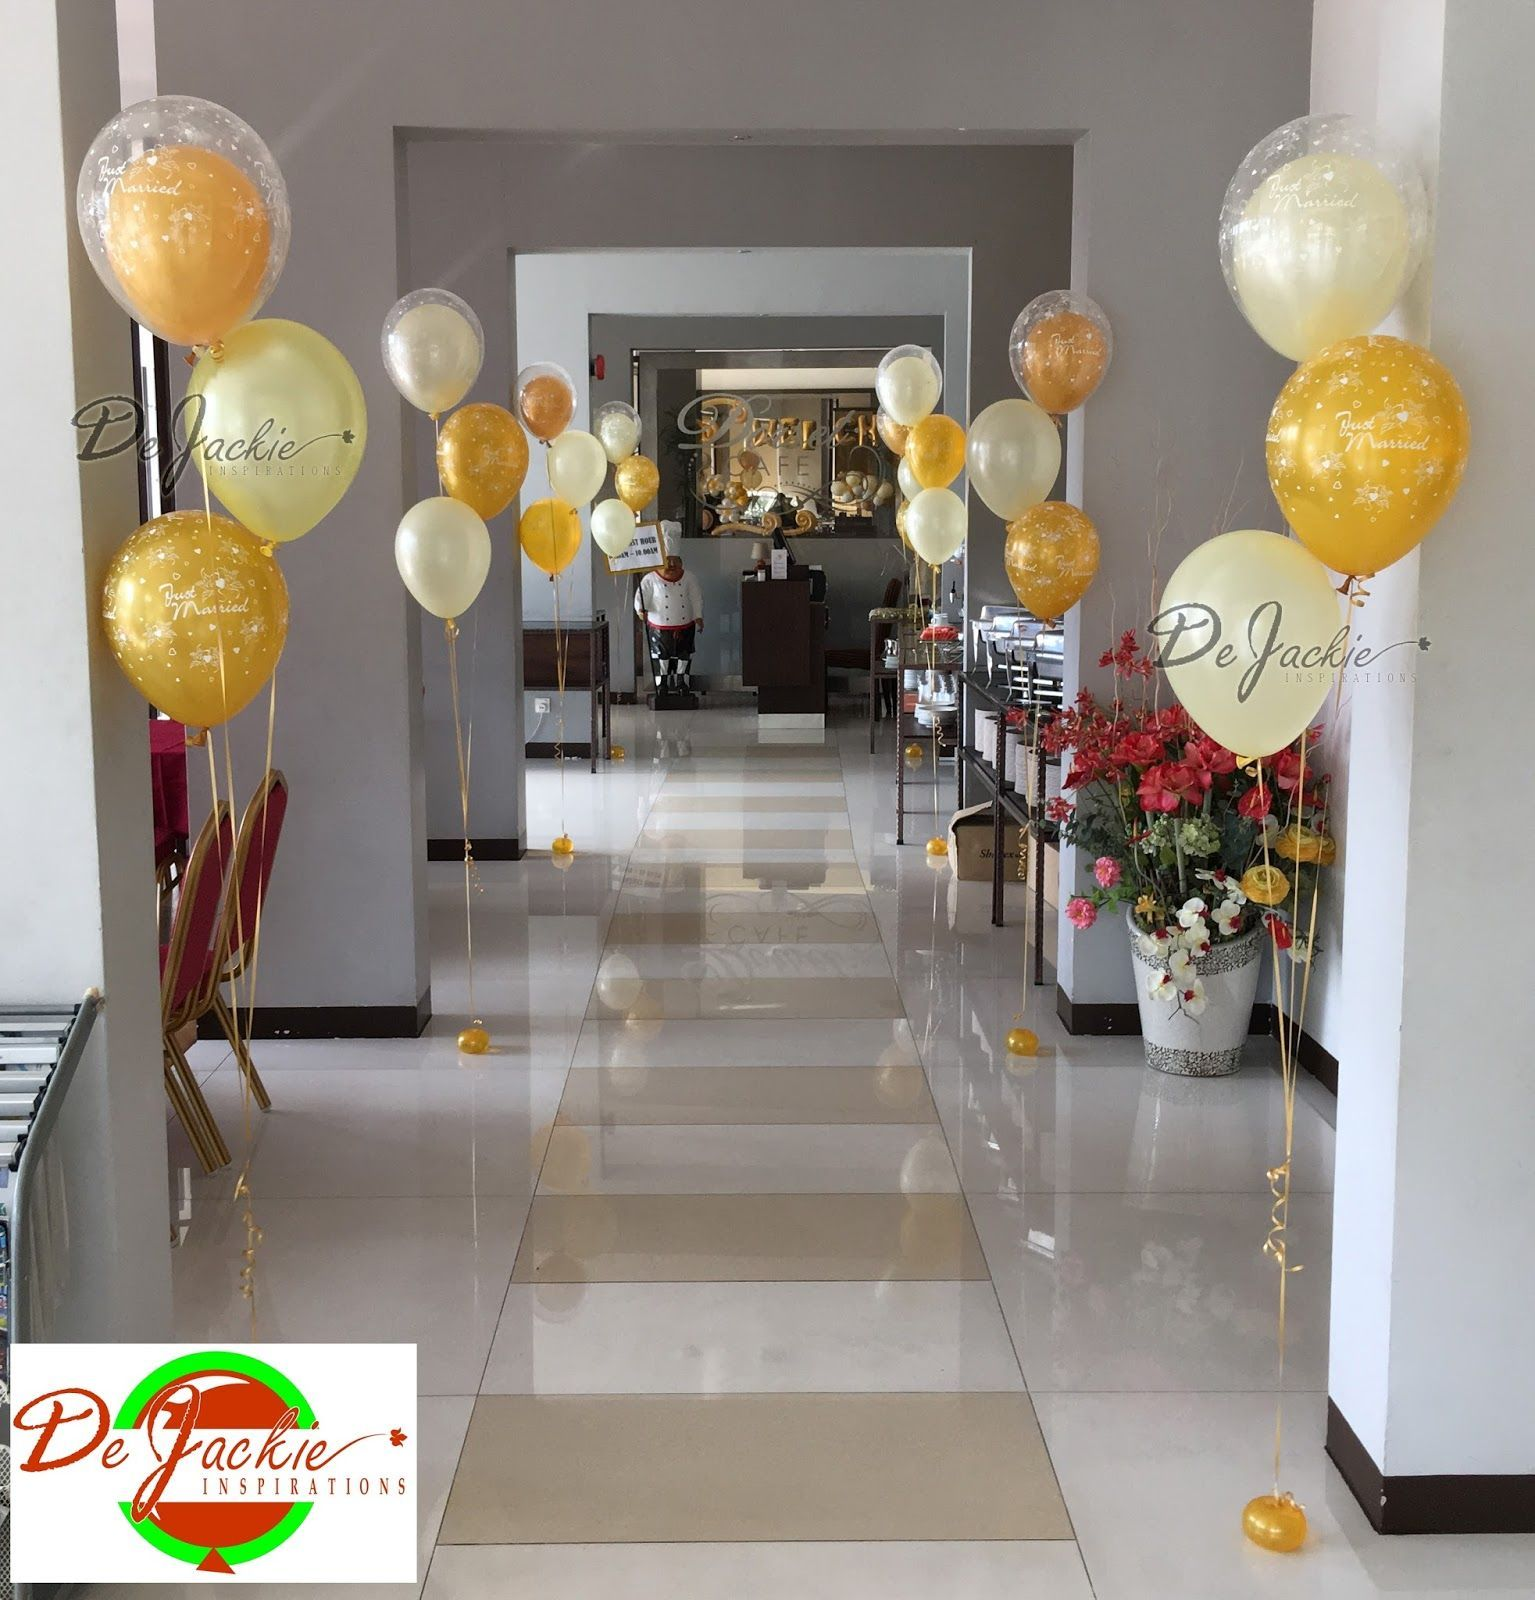 Balloon Decorations For Events Such As Weddings, Birthday Parties, Corporate